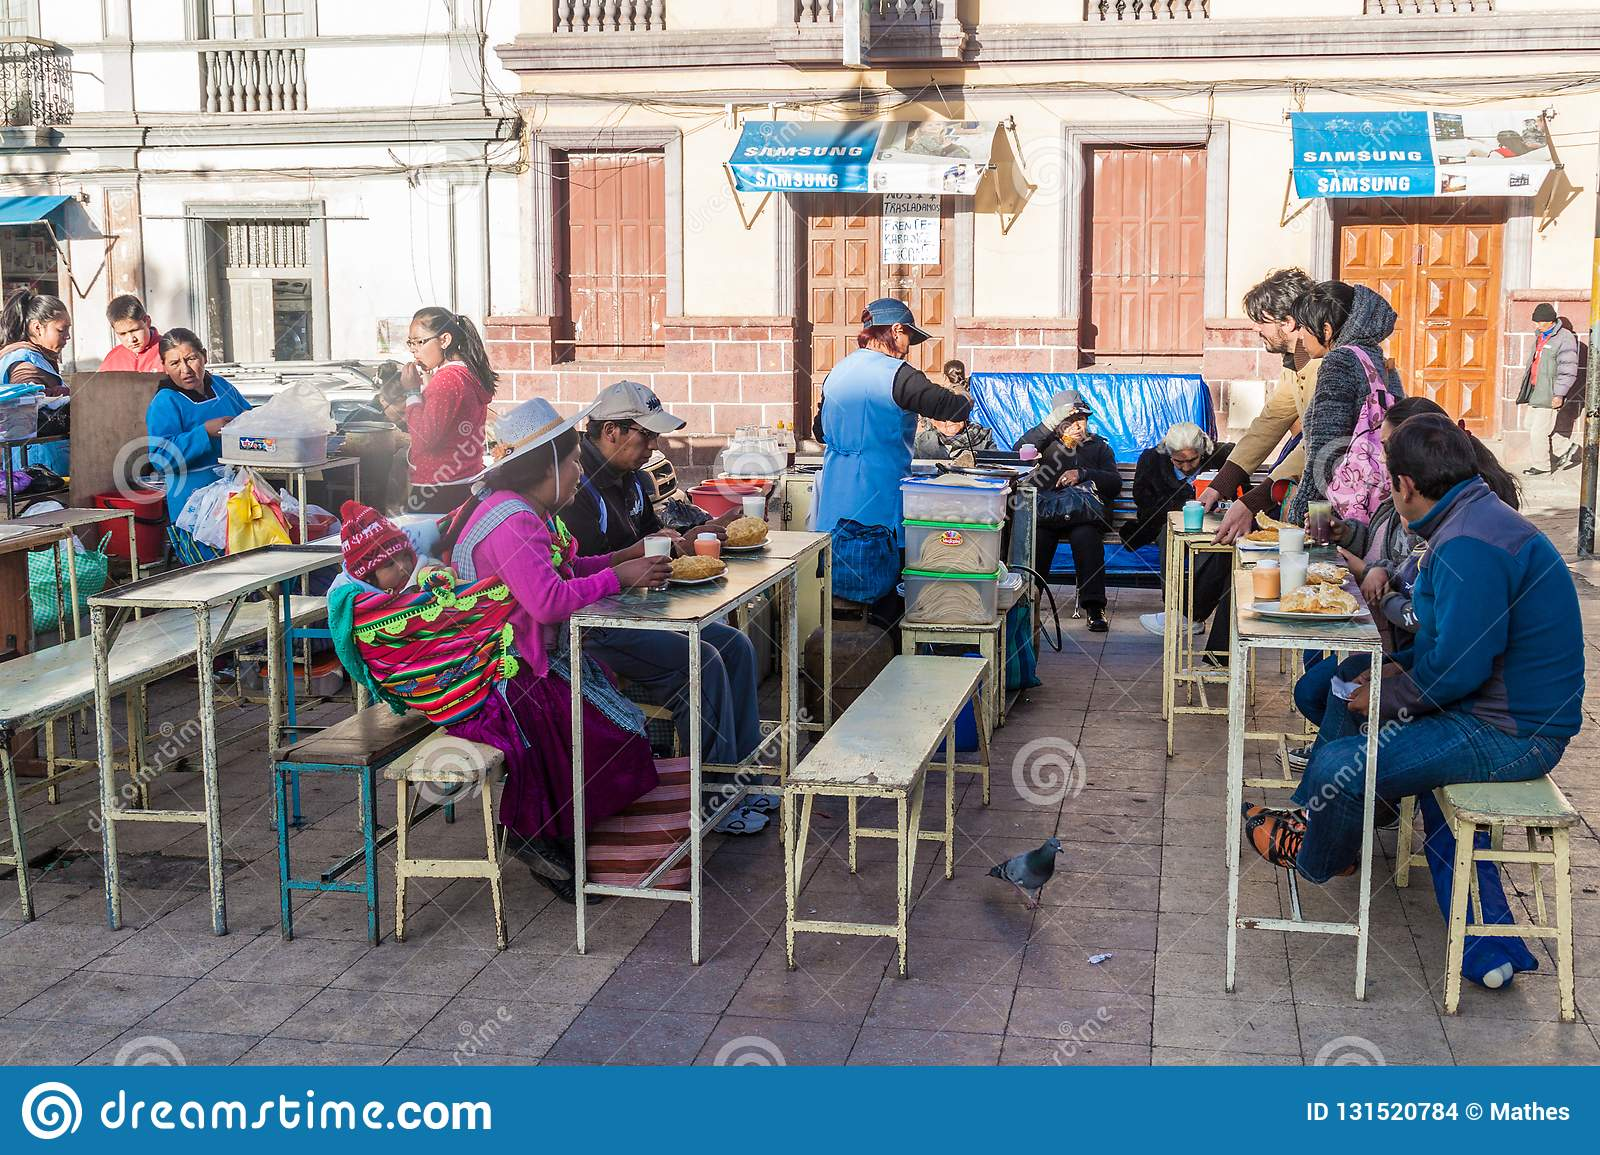 POTOSI, BOLIVIA - APRIL 19, 2015: Local people eating on a market in Potos